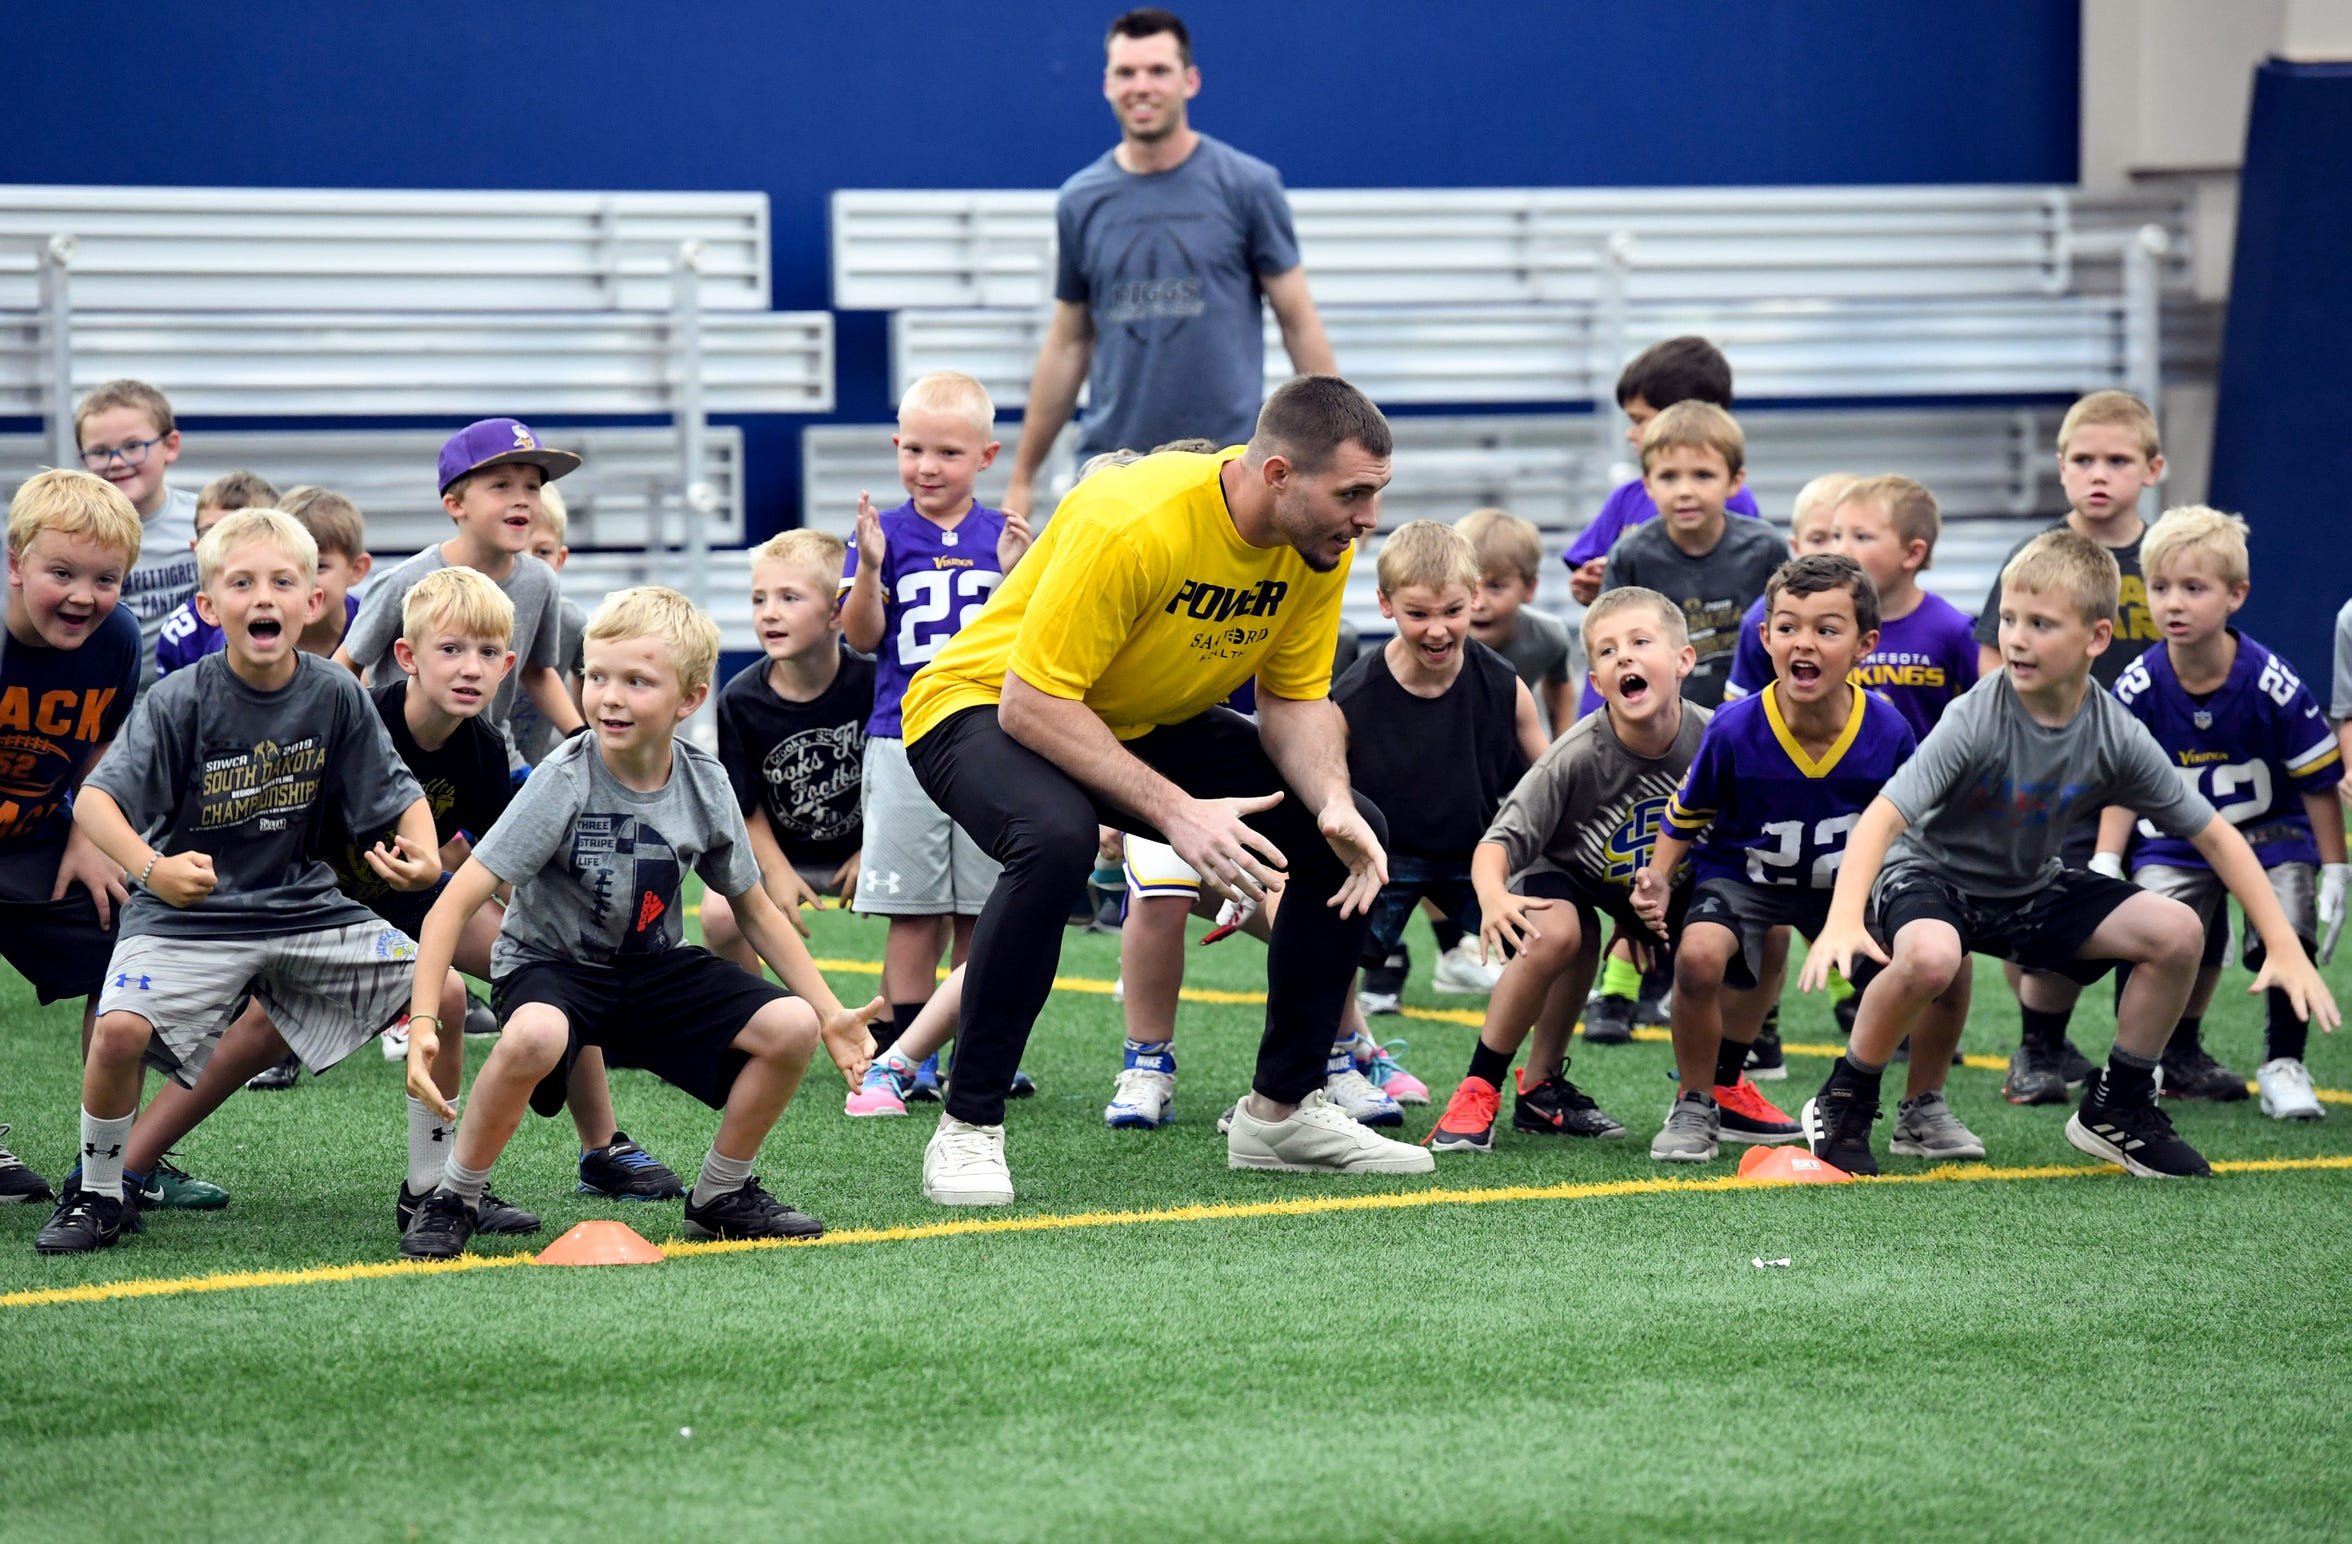 Minnesota Vikings safety Harrison Smith teaches a defensive stance at a youth football camp Monday, June 17, at the Sanford Fieldhouse in Sioux Falls.